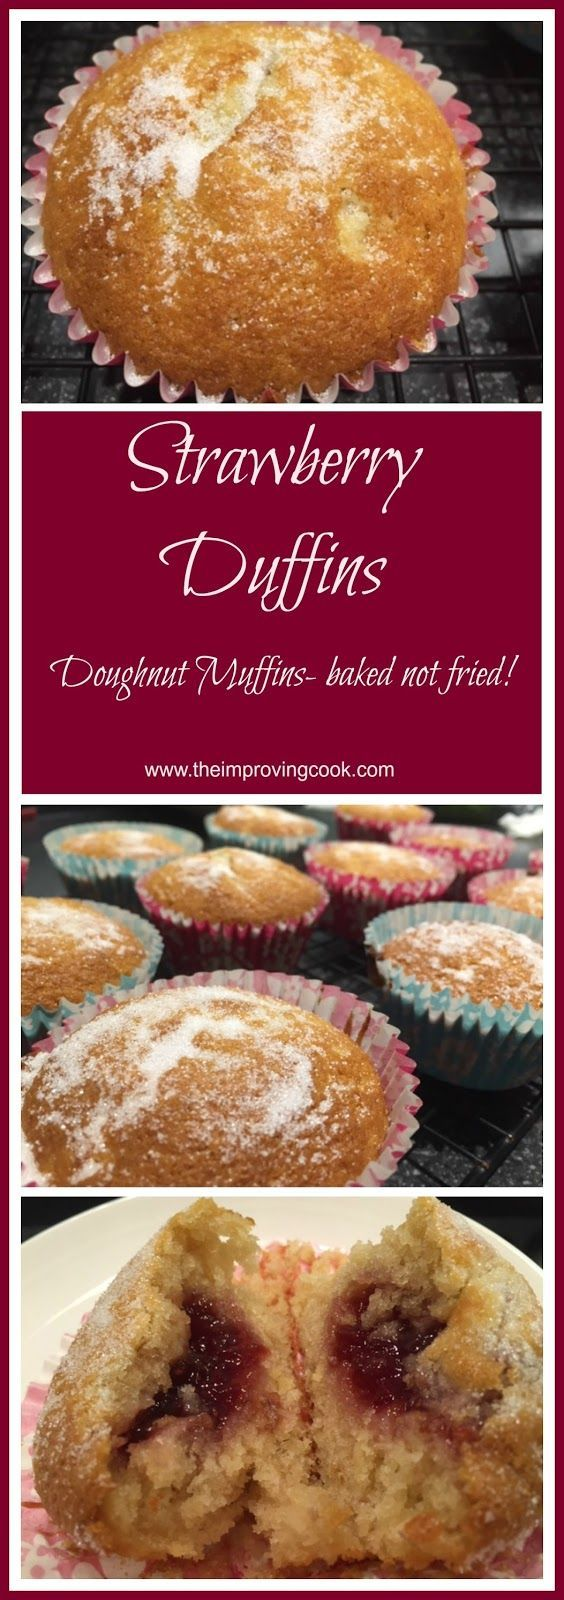 The Improving Cook: Strawberry Duffins (Doughnut Muffins). A cross between a doughnut and a muffin with strawberry jam inside. Plus it's baked, not fried.